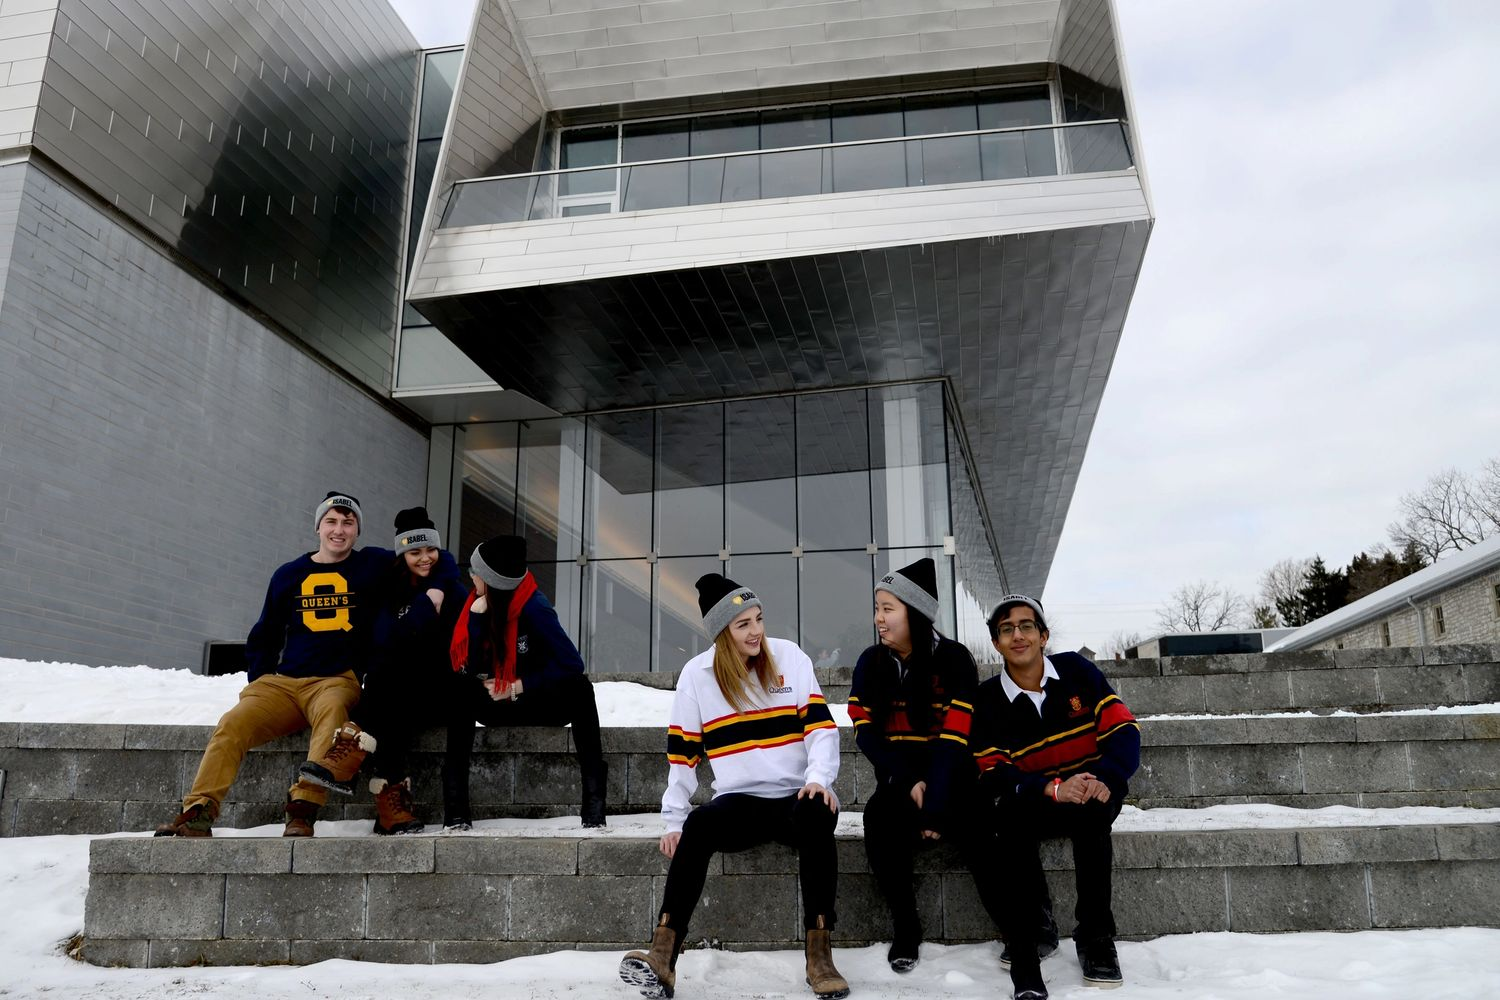 People wearing branded Queen's University clothing sit outside the Isabel in winter.